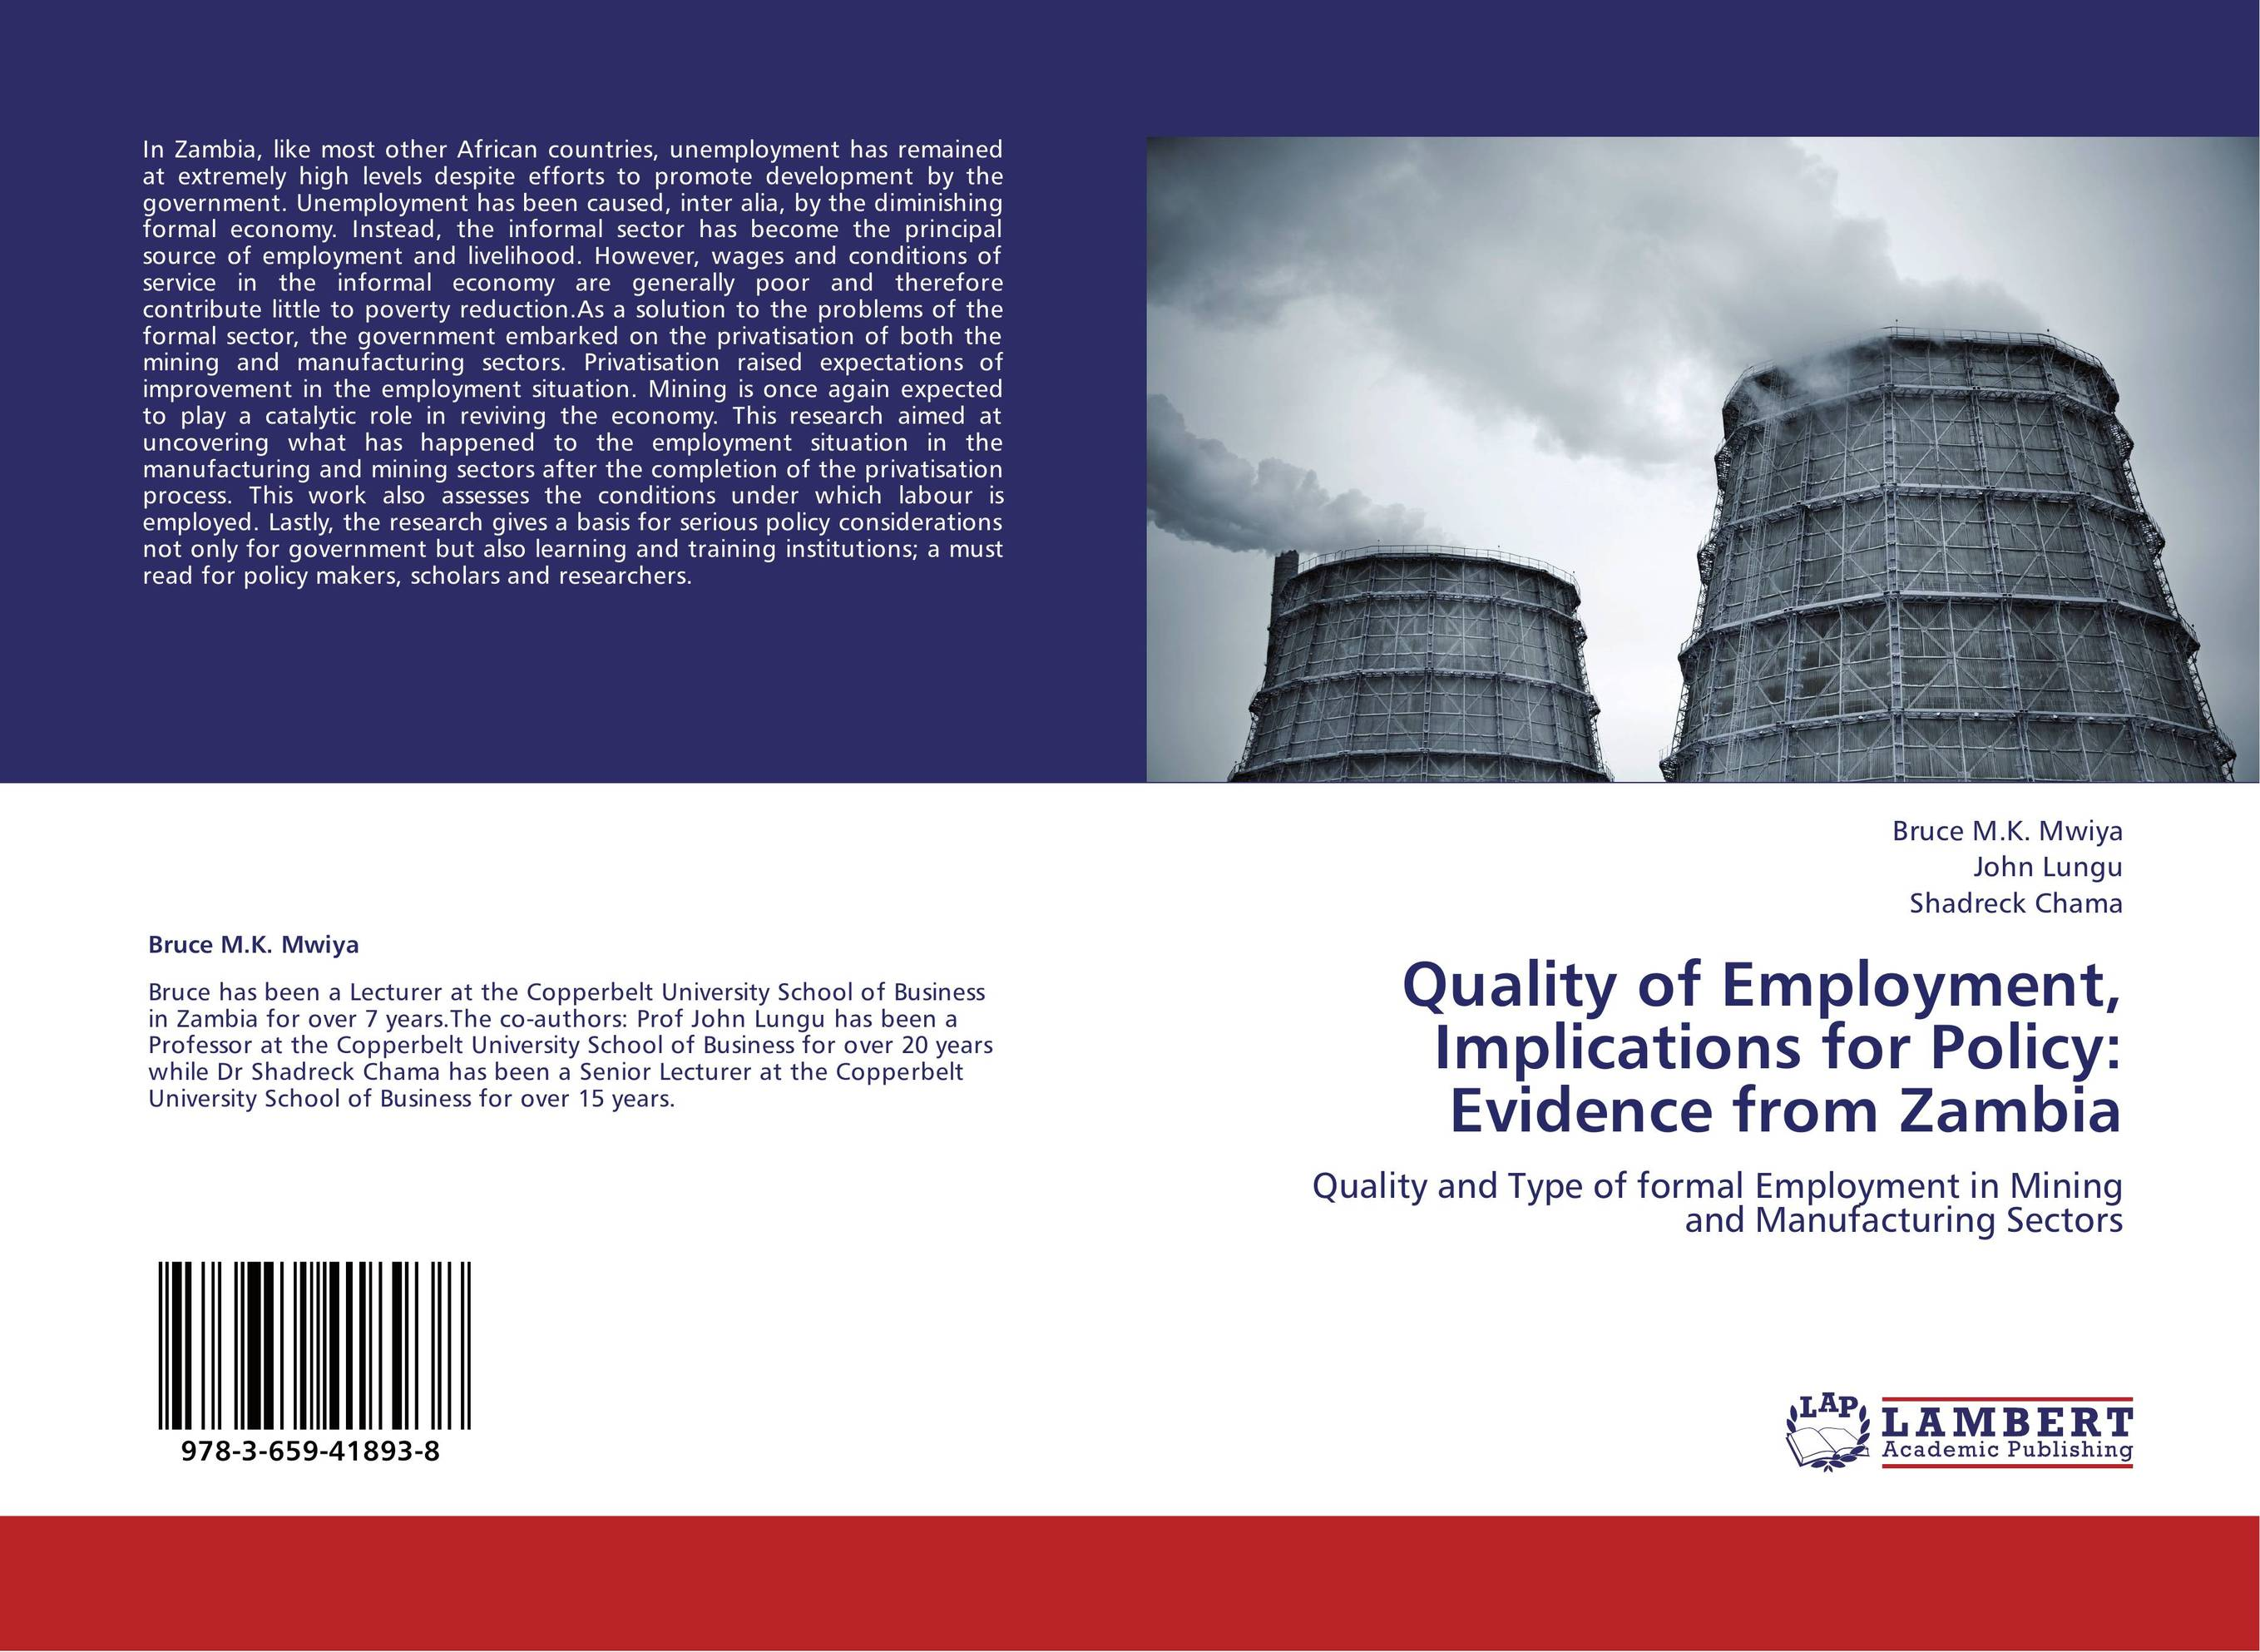 Quality of Employment, Implications for Policy: Evidence from Zambia купить